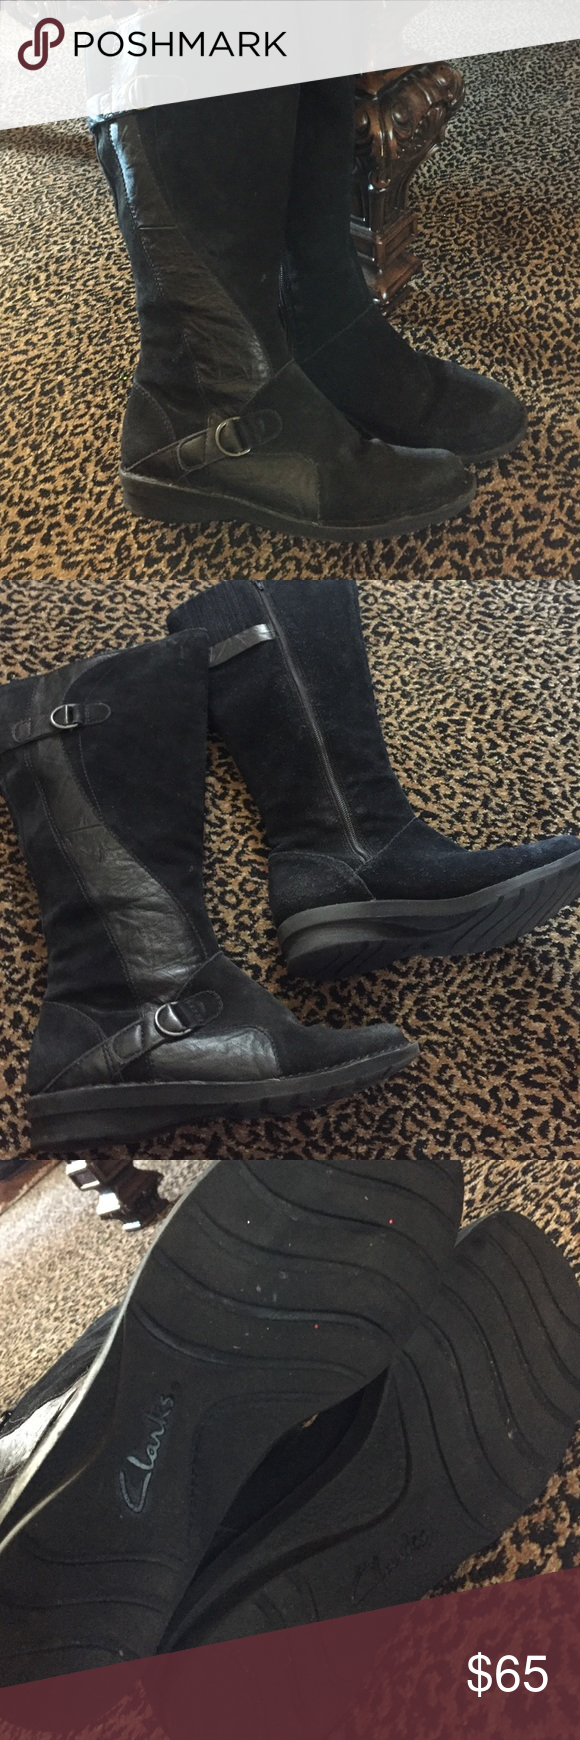 Clarks Tall Black leather boots Great comfort rubber soul.  genuine suede and leather. Great condition Clarks Shoes Winter & Rain Boots